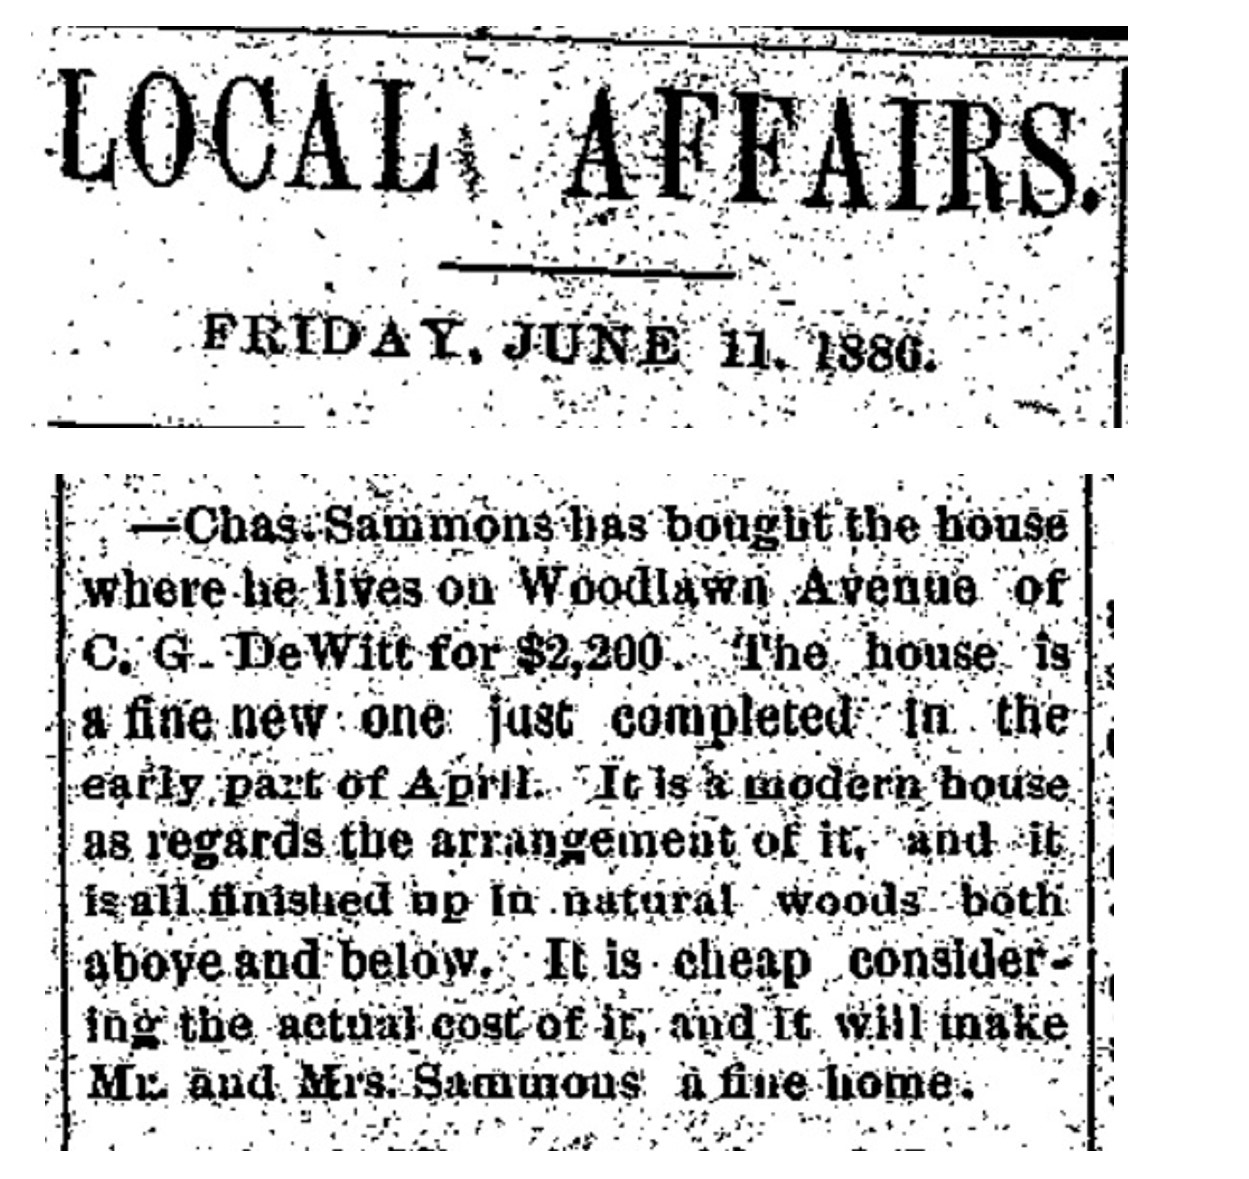 Woodlawn25SammonsBuysFromCGDewittFairptHld6.11.1886